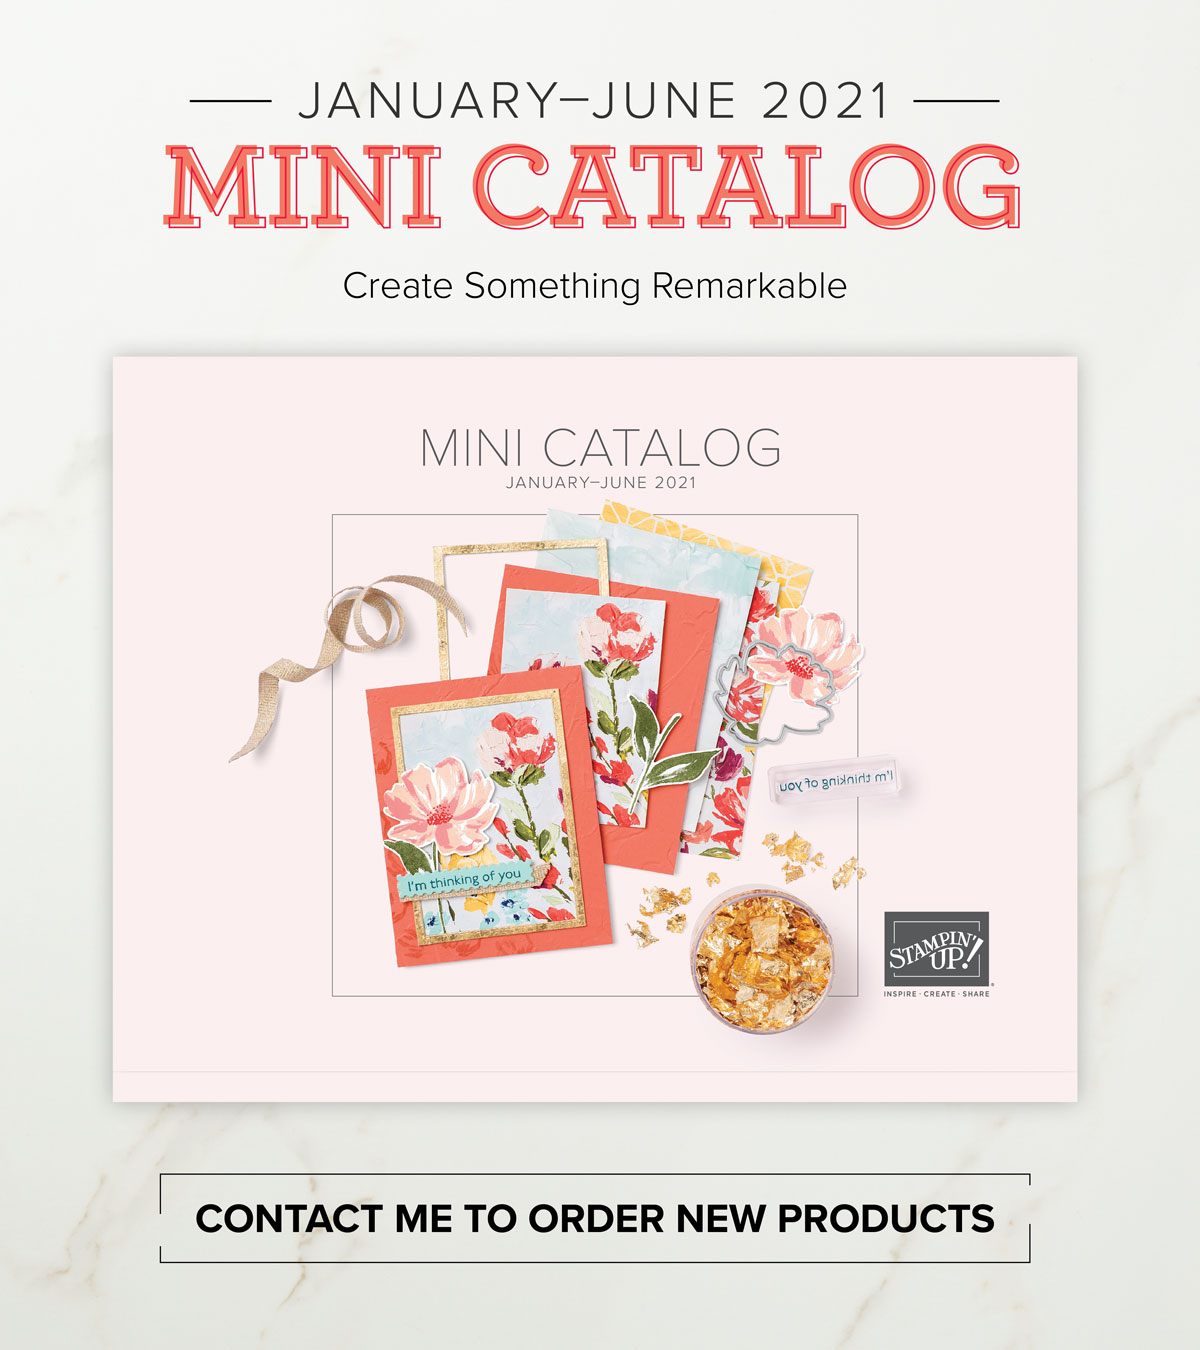 NOW AVAILABLE: Our New Mini Catalog